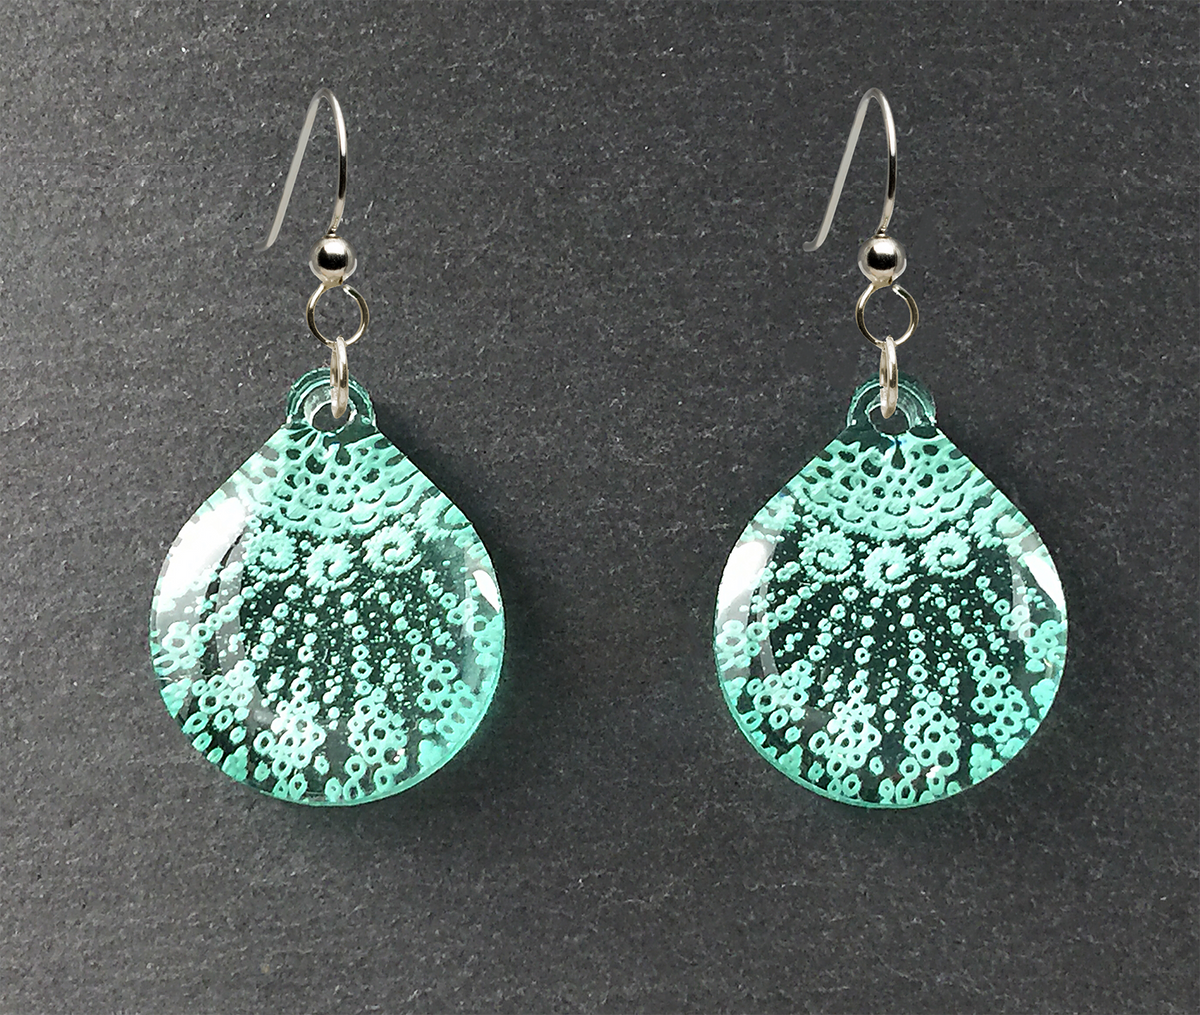 Starfish Earrings, Small Teardrop shape, Sea Foam Green, From Lab Partners Jewelry